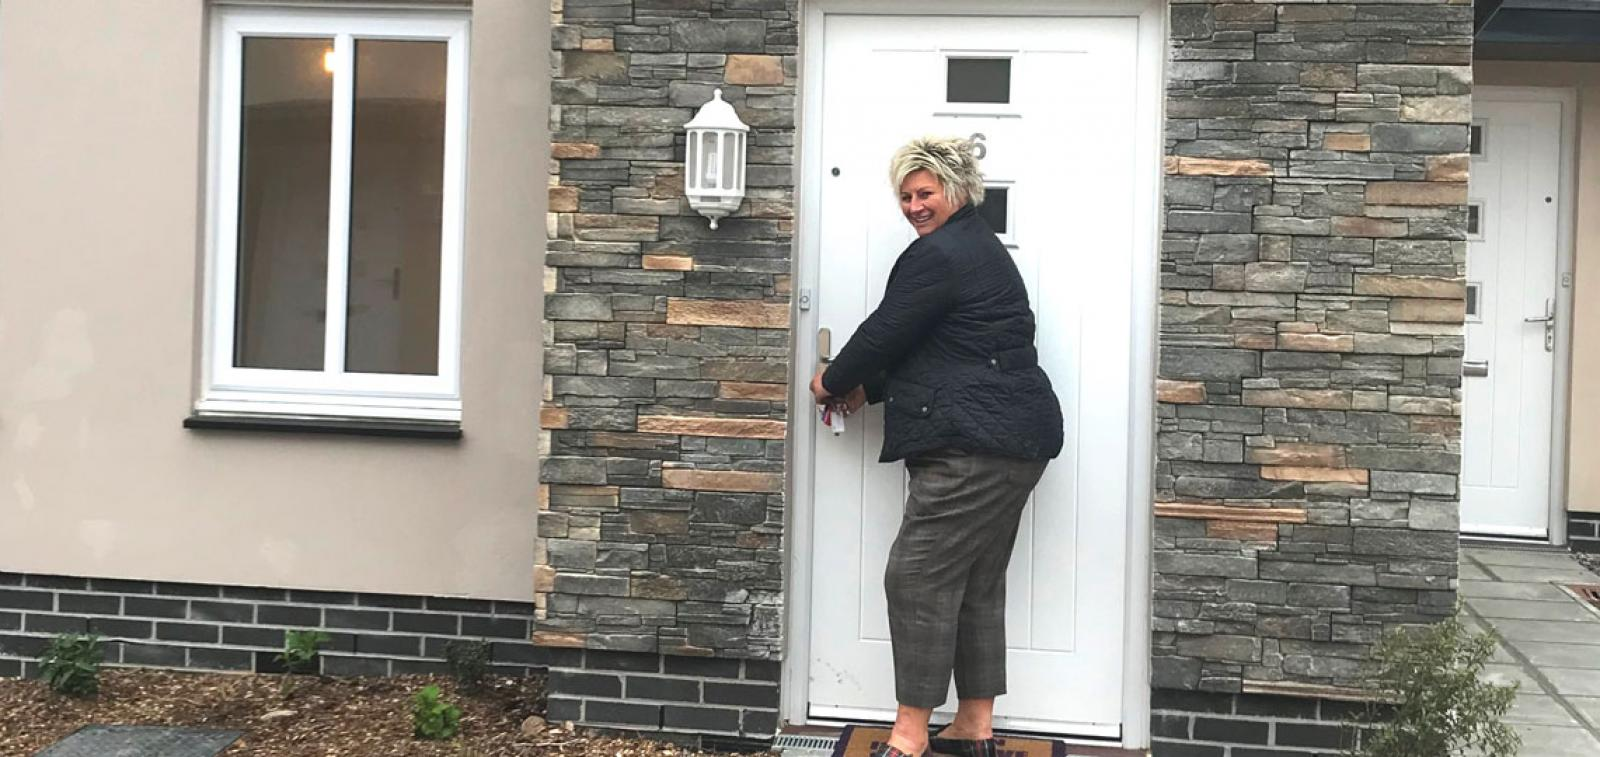 Sharon outside her new Shared Ownership home